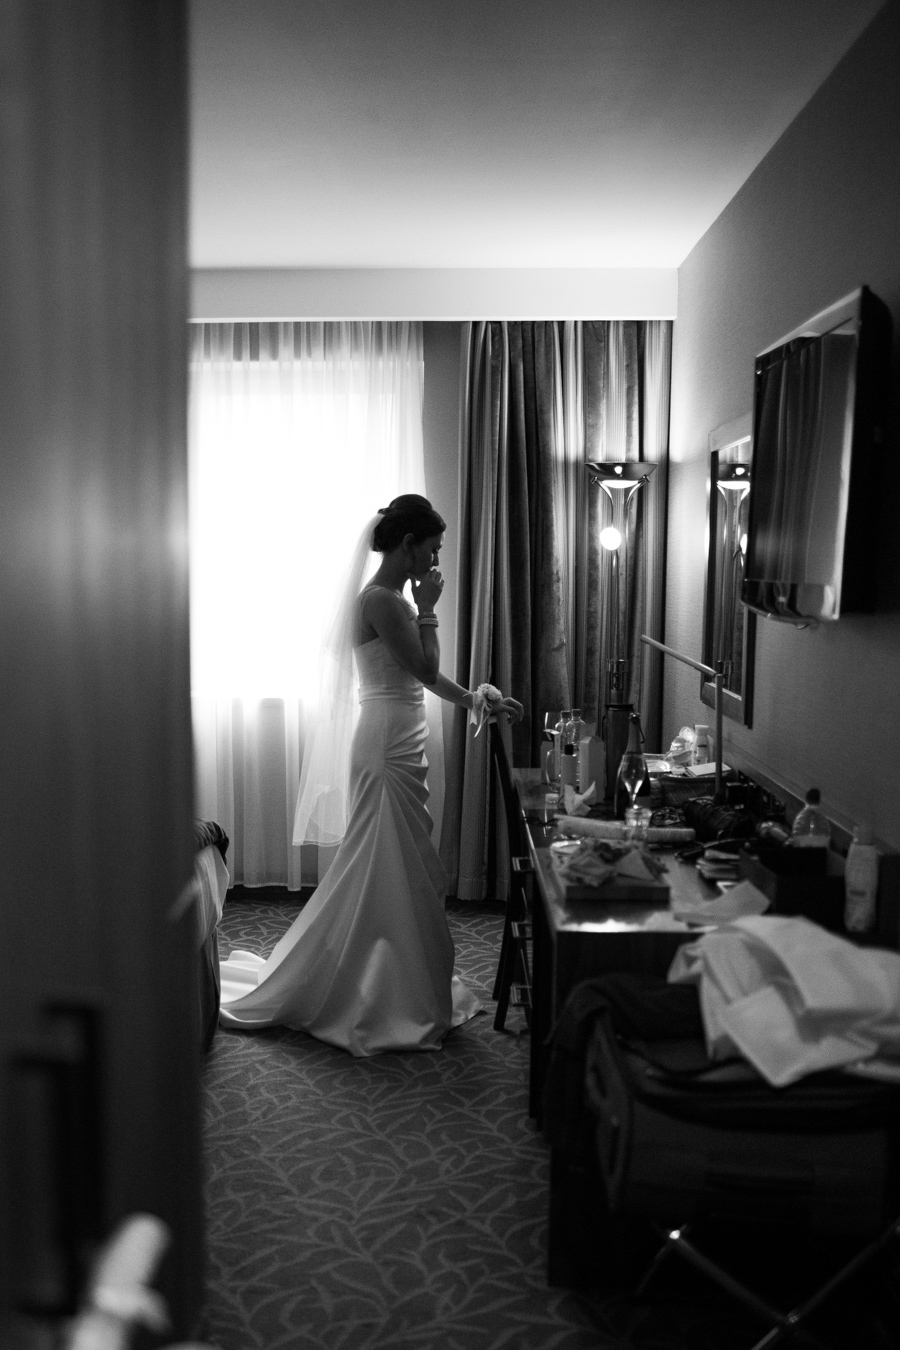 Wedding Photographer Northern Ireland, bride has a quiet moment of reflection before wedding, Europa hotel, Great Victoria Street, Belfast.